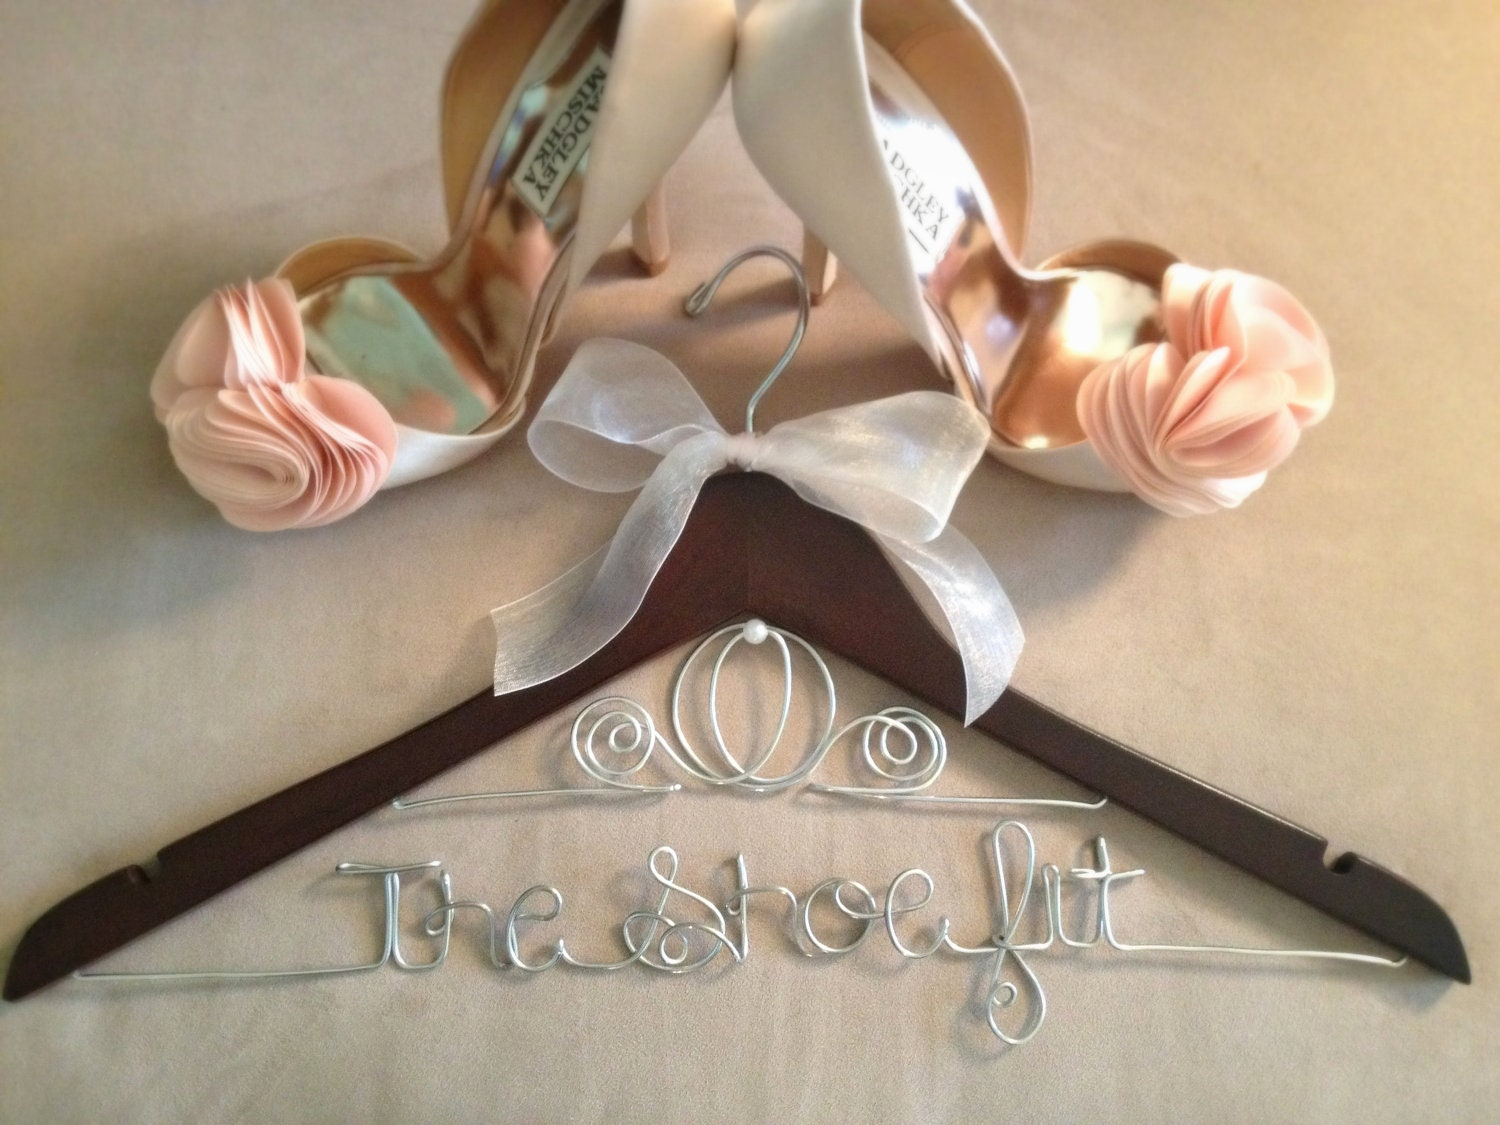 Bridal hanger brides cinderella hanger disney hanger for Wedding dress hangers with name